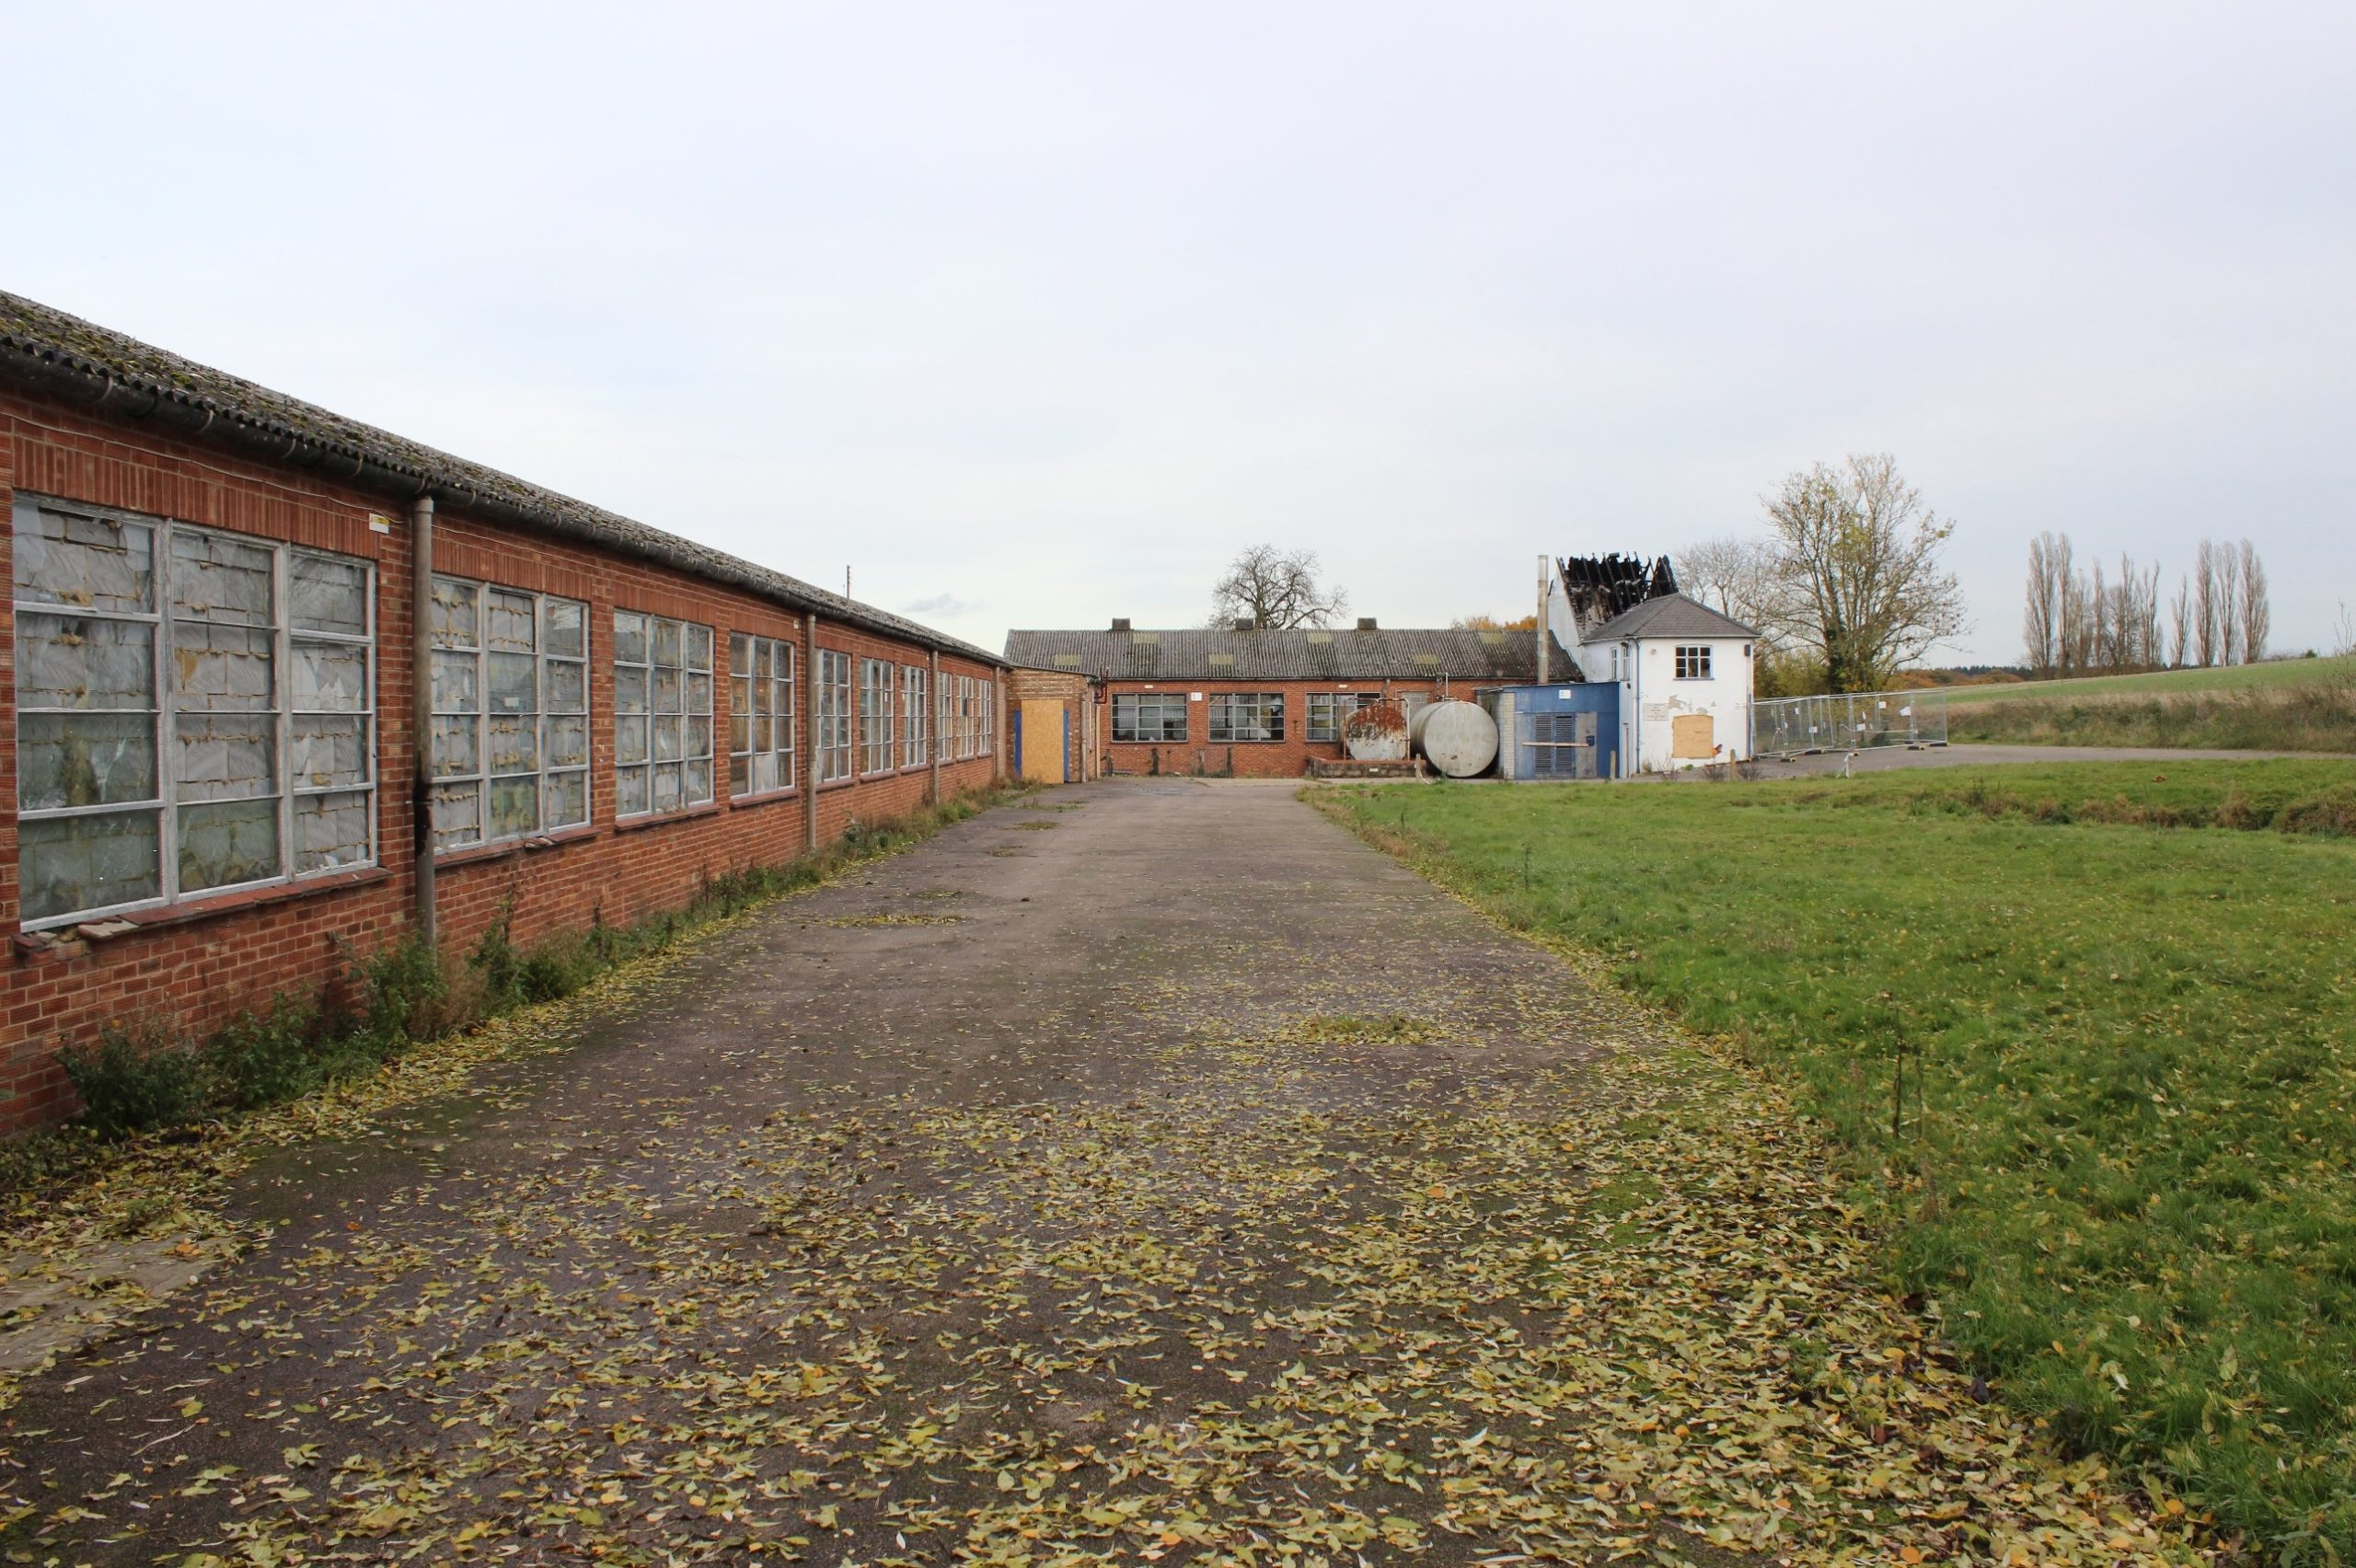 Construction could start soon at Glemsford